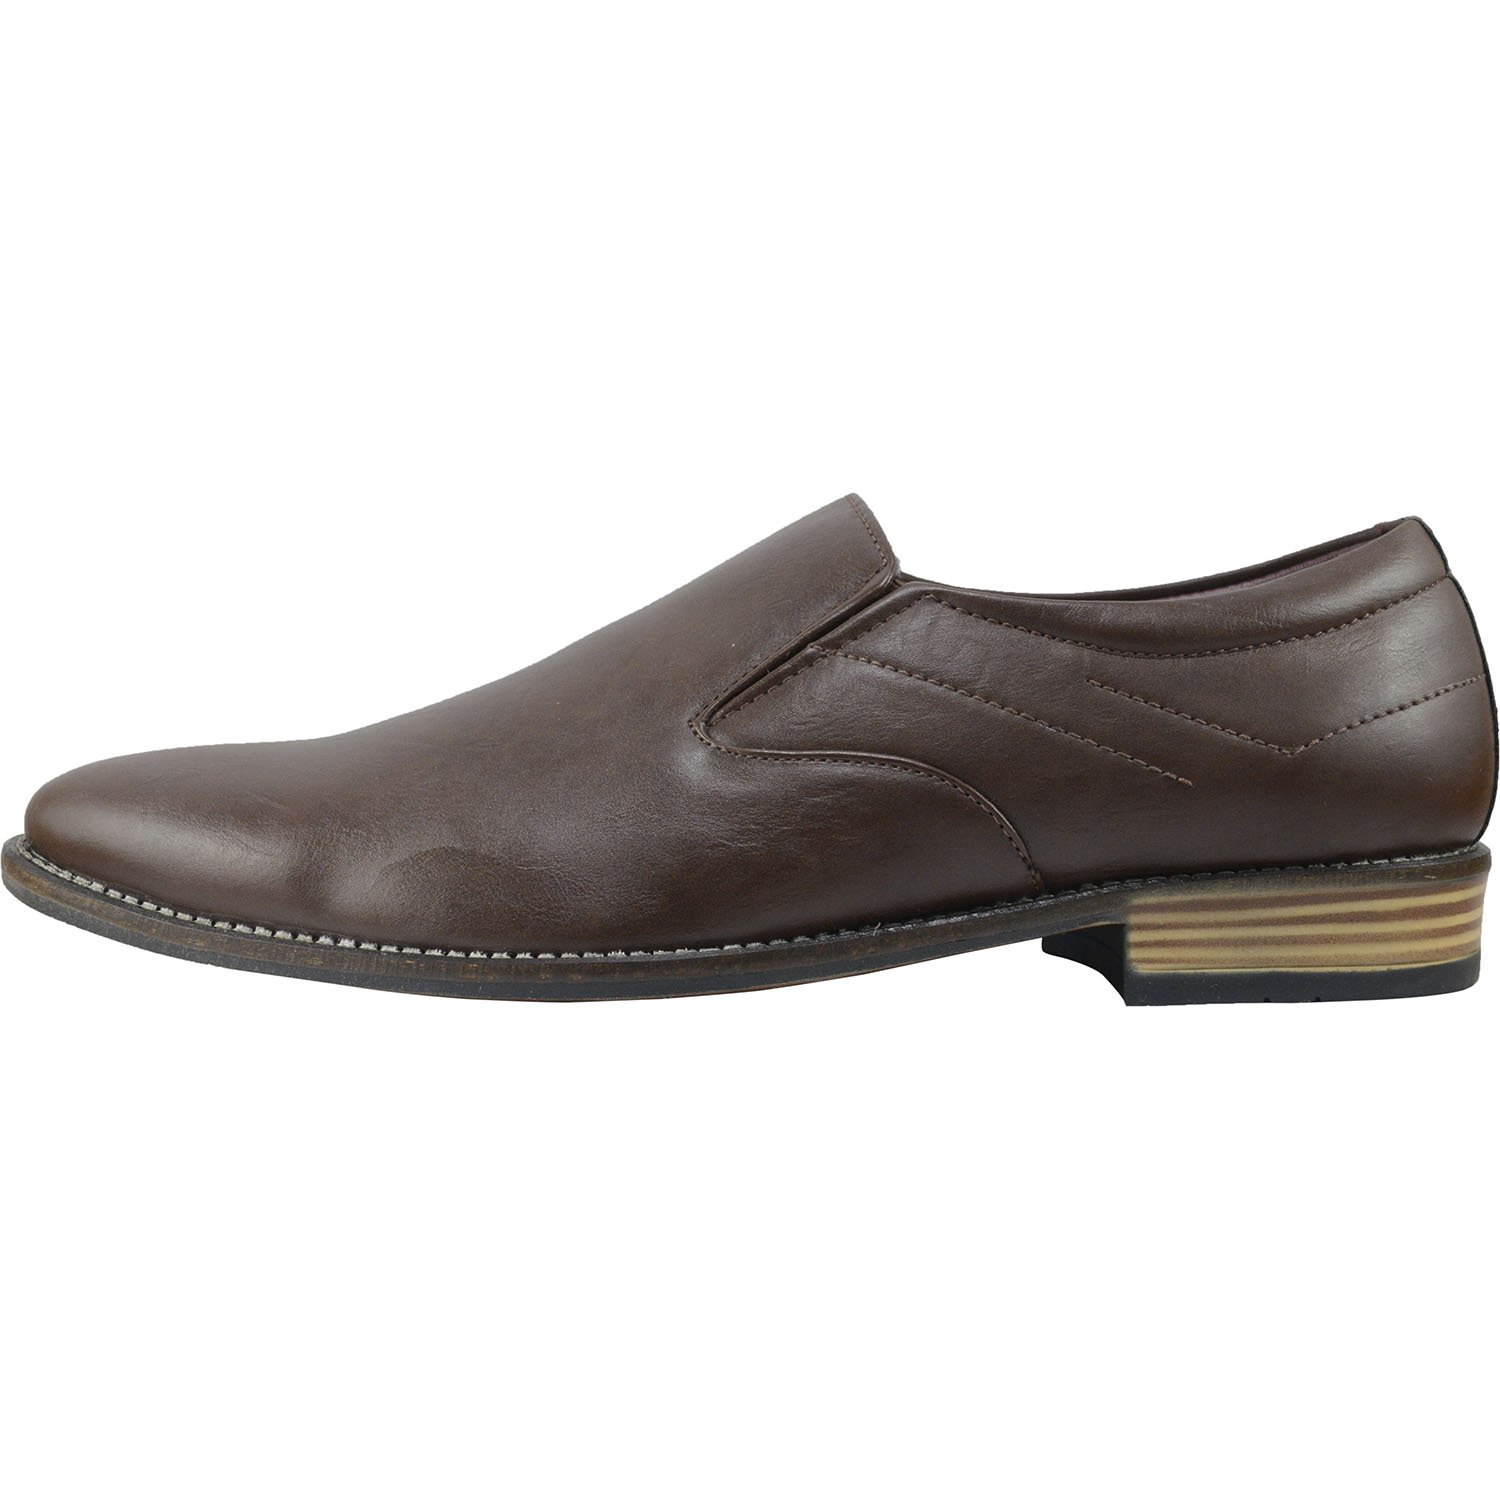 Vonzo Mens Slip On Shoes Stylish Dress Formal Business Casual Oxfords Loafers